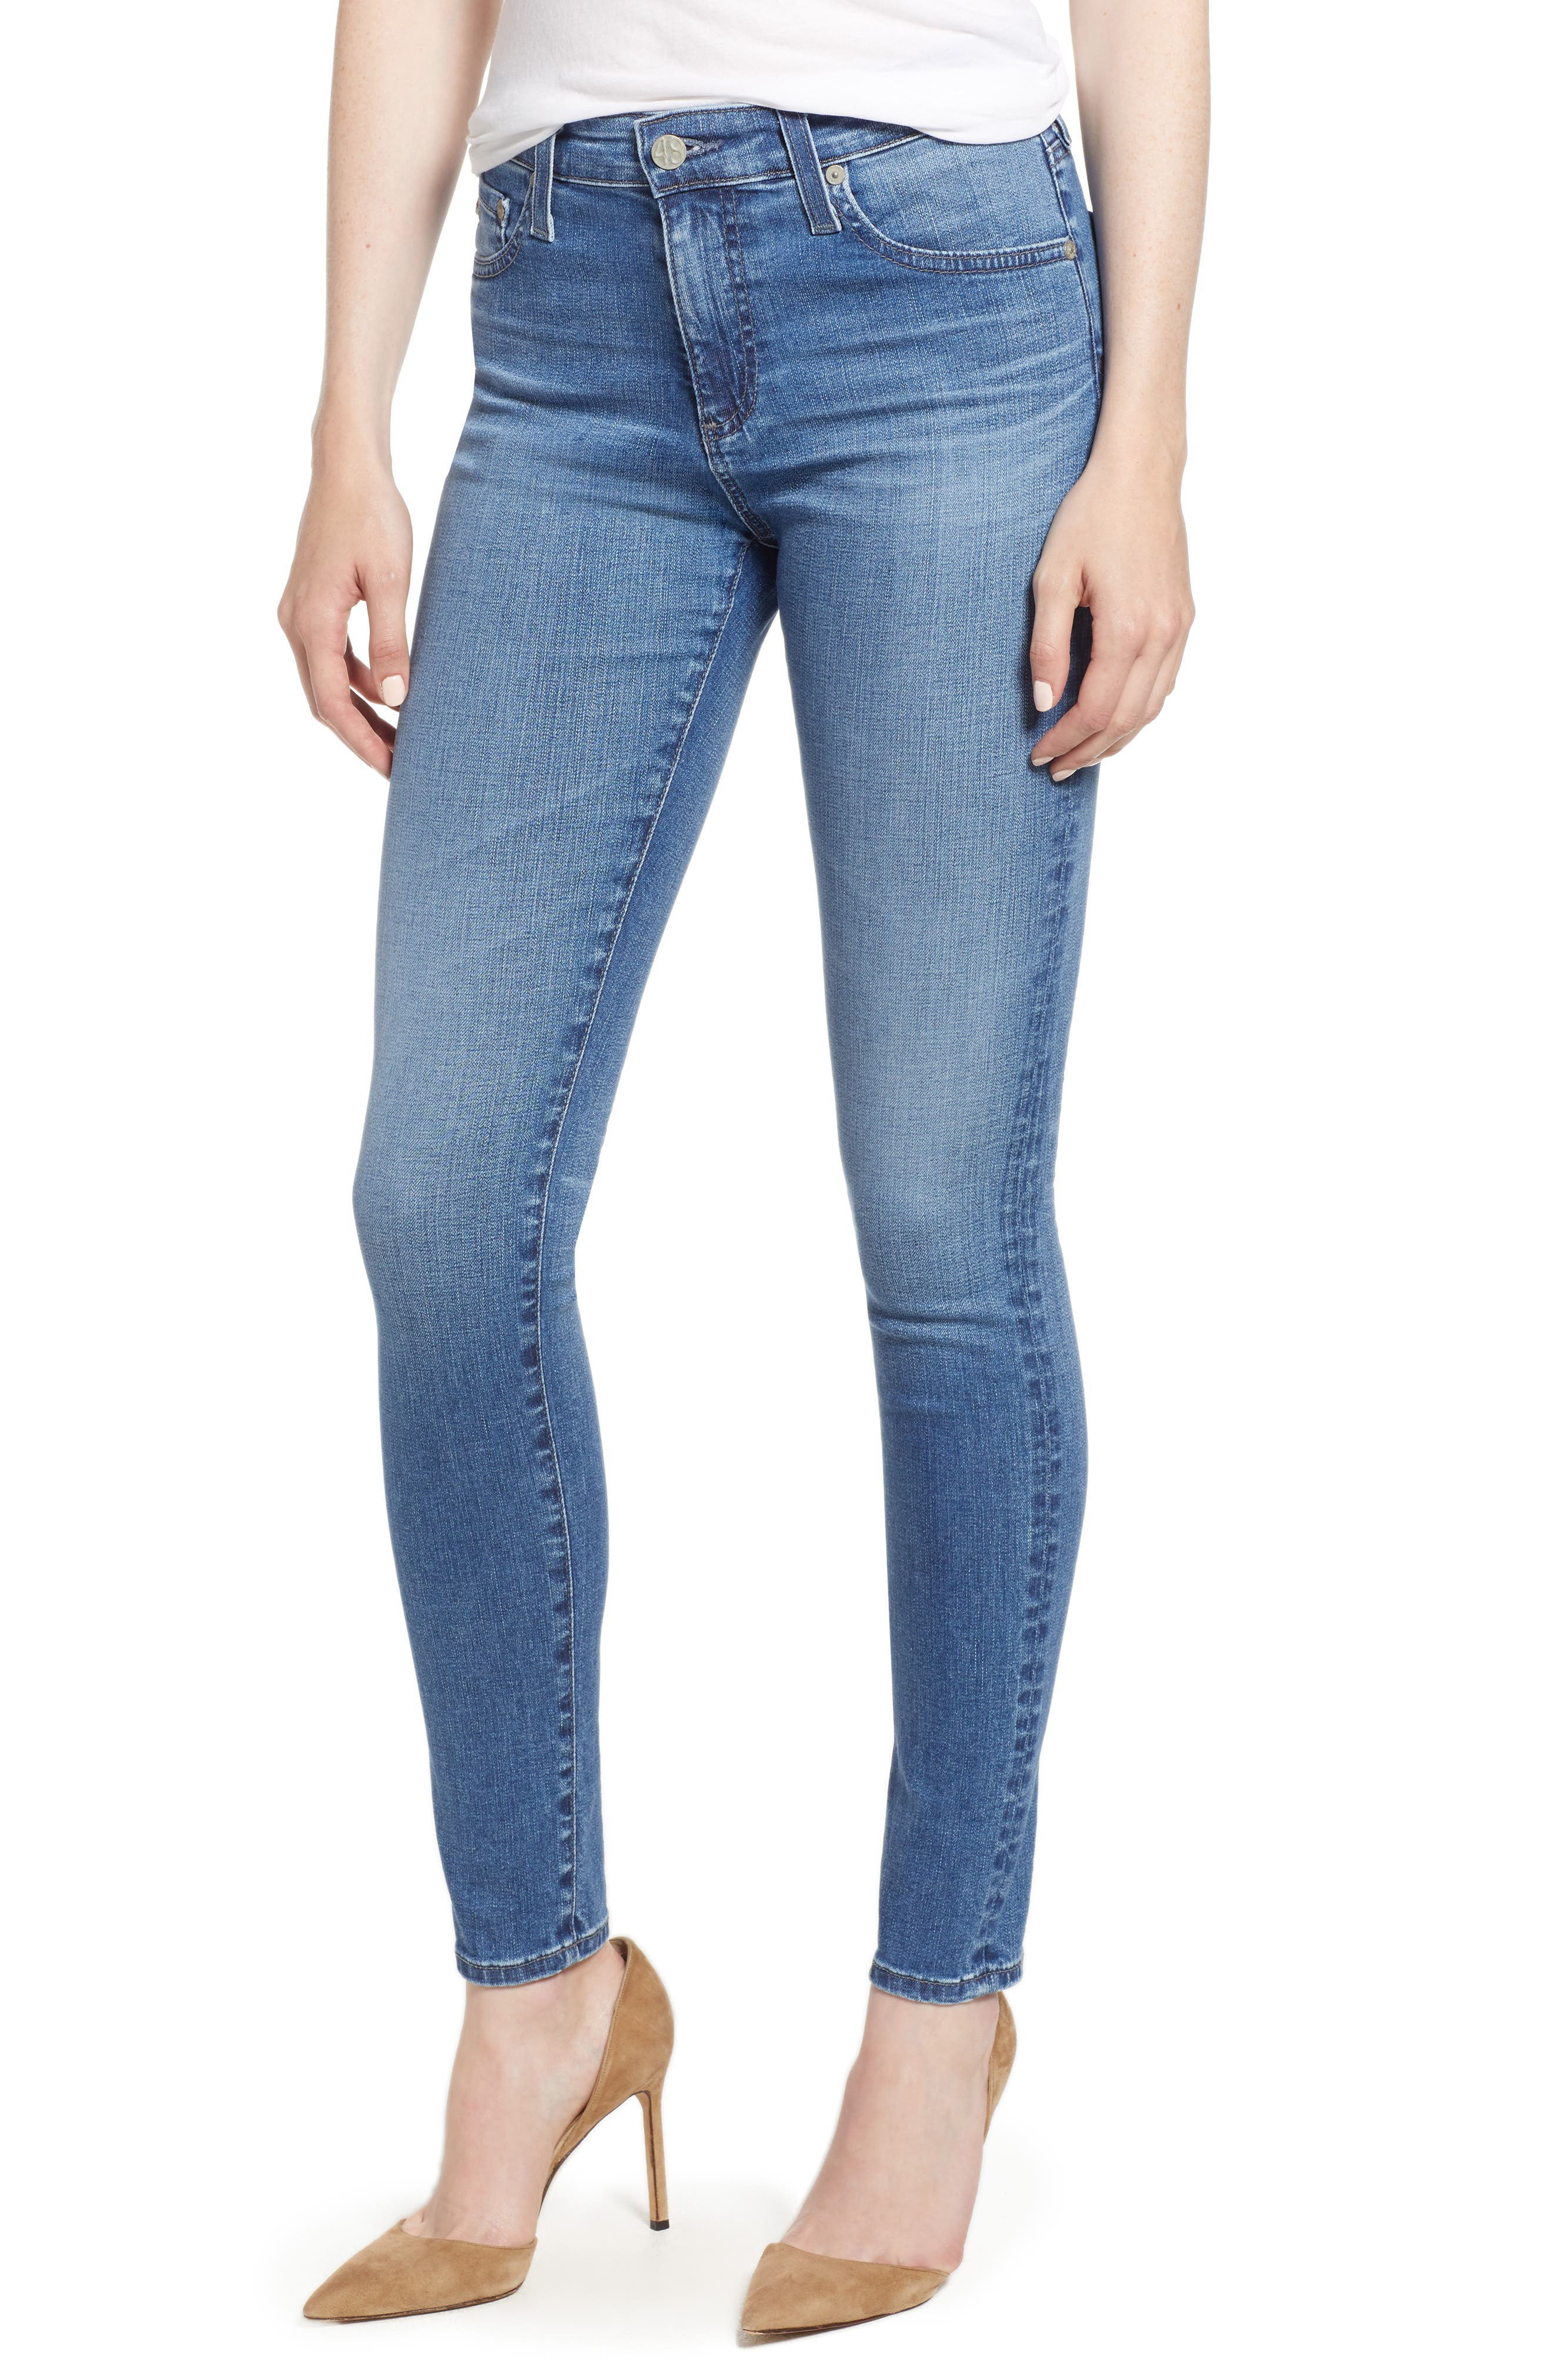 'The Farrah' High Rise Skinny Jeans,                             Main thumbnail 1, color,                             15 Years Chronic